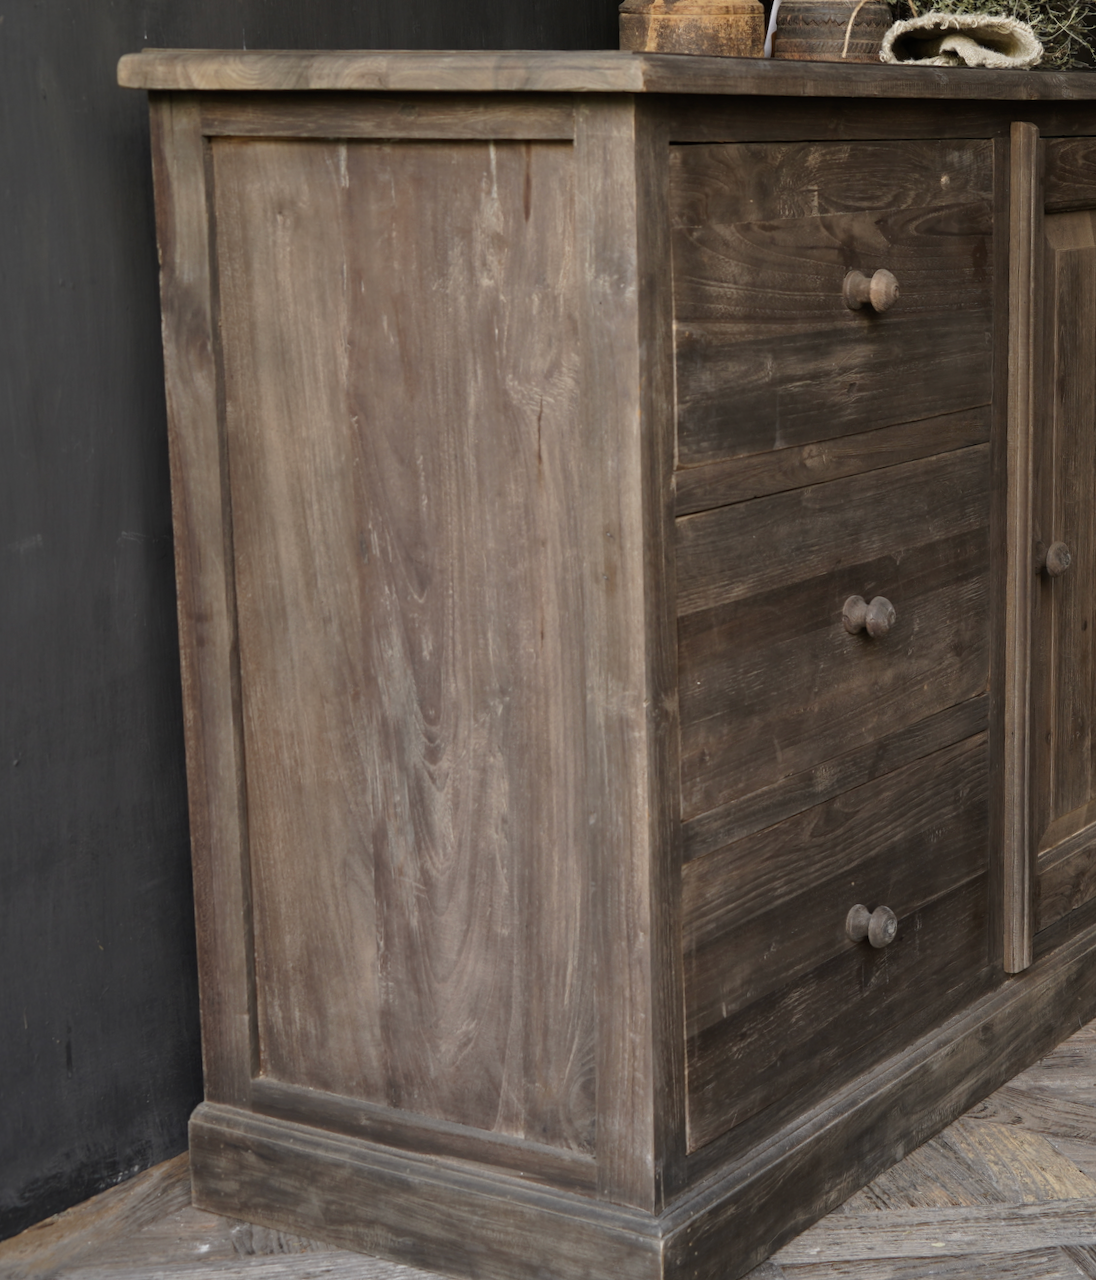 Old wooden drawer cabinet with a door Lieke-5